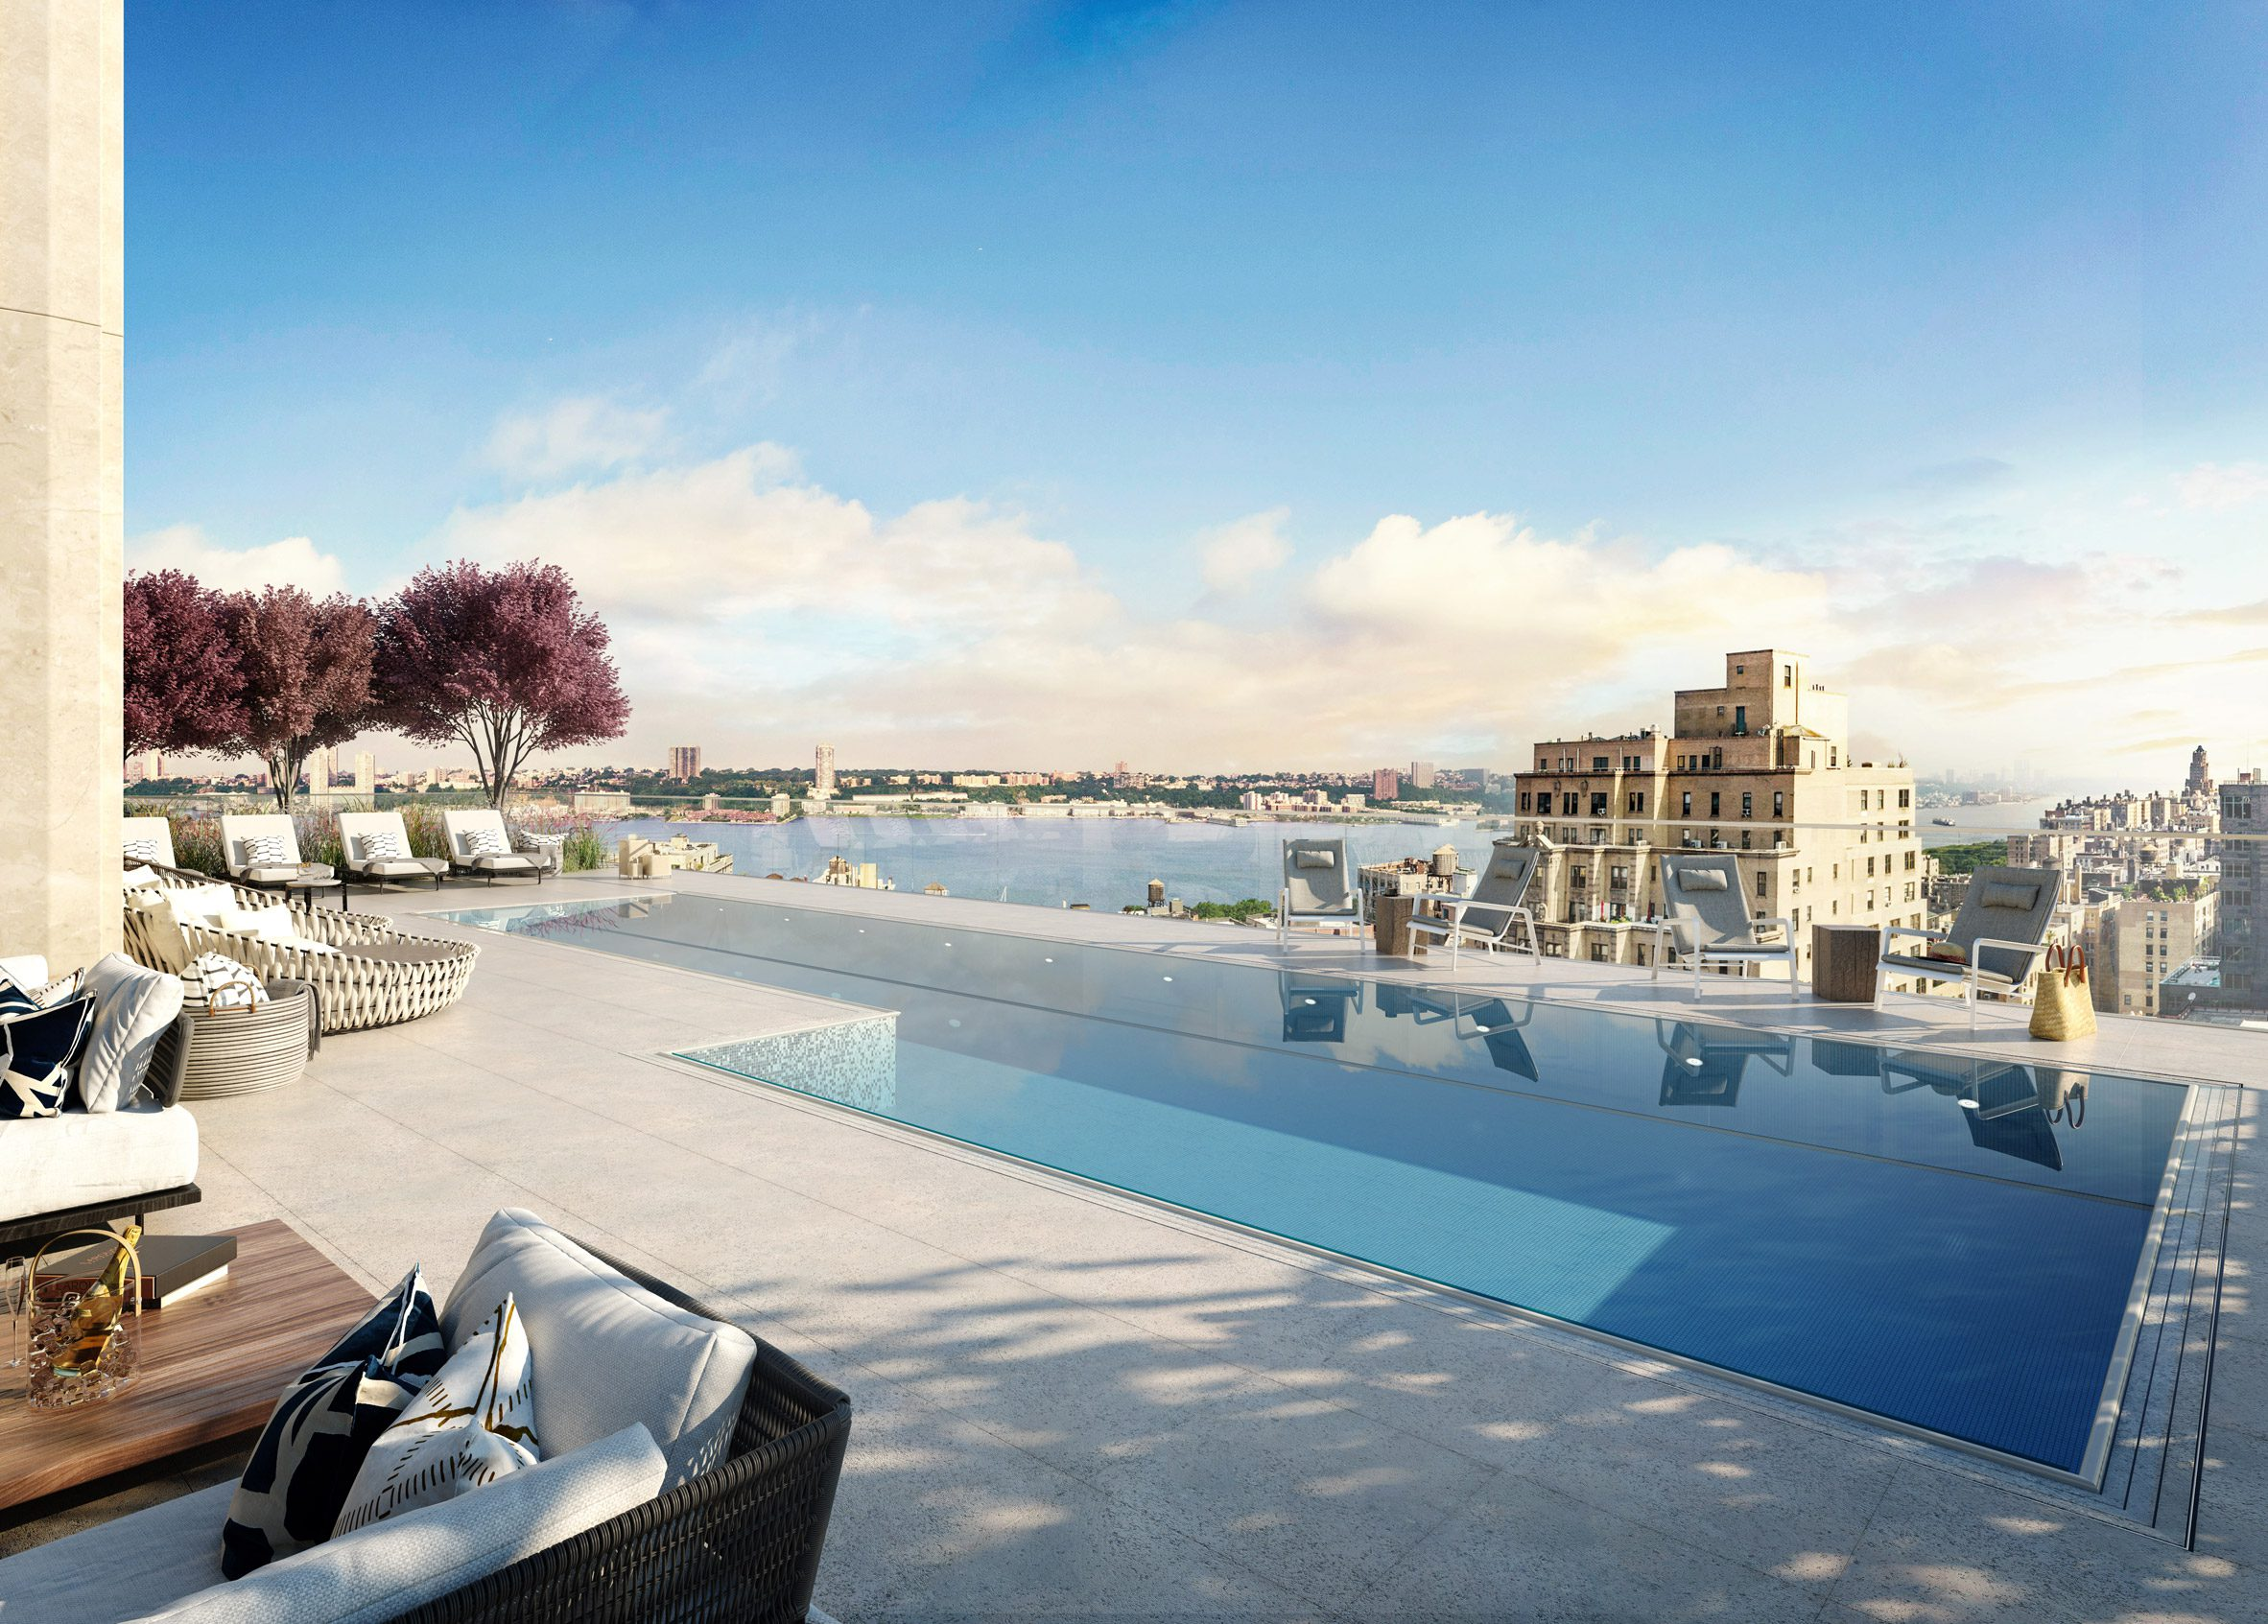 ODA will add a rooftop pool to the project